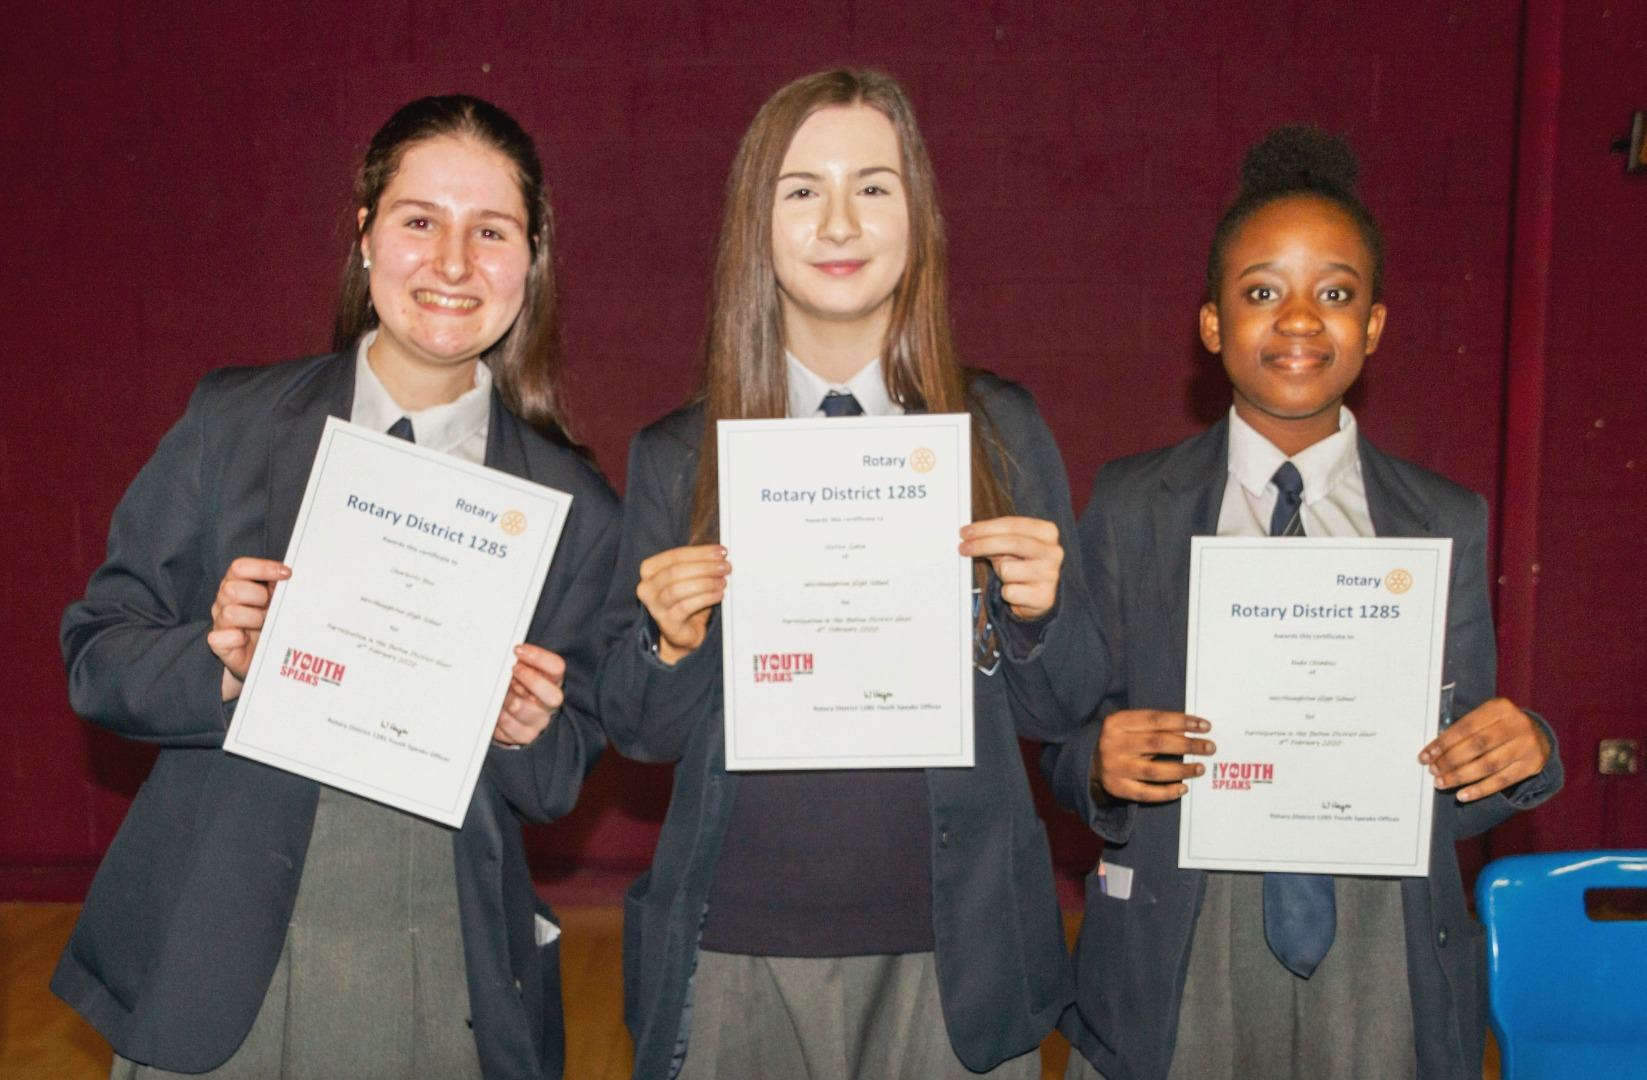 Westhoughton winners in Rotary Youth Speaks